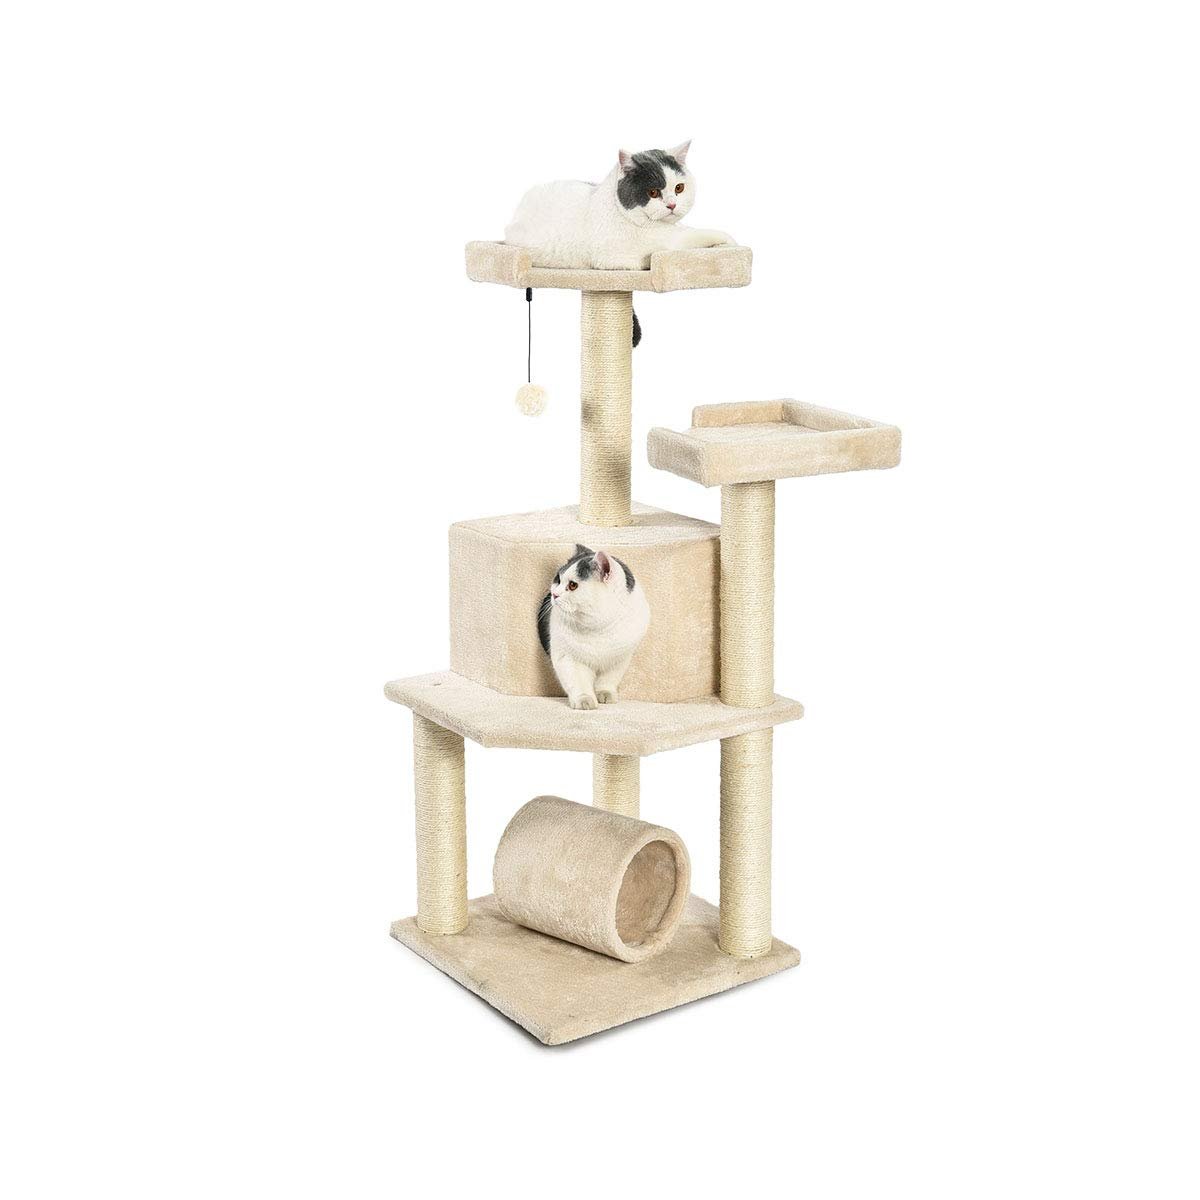 AmazonBasics Cat Tree with Platform, Scratching Posts, X-Large Size 61m21-ypAEL